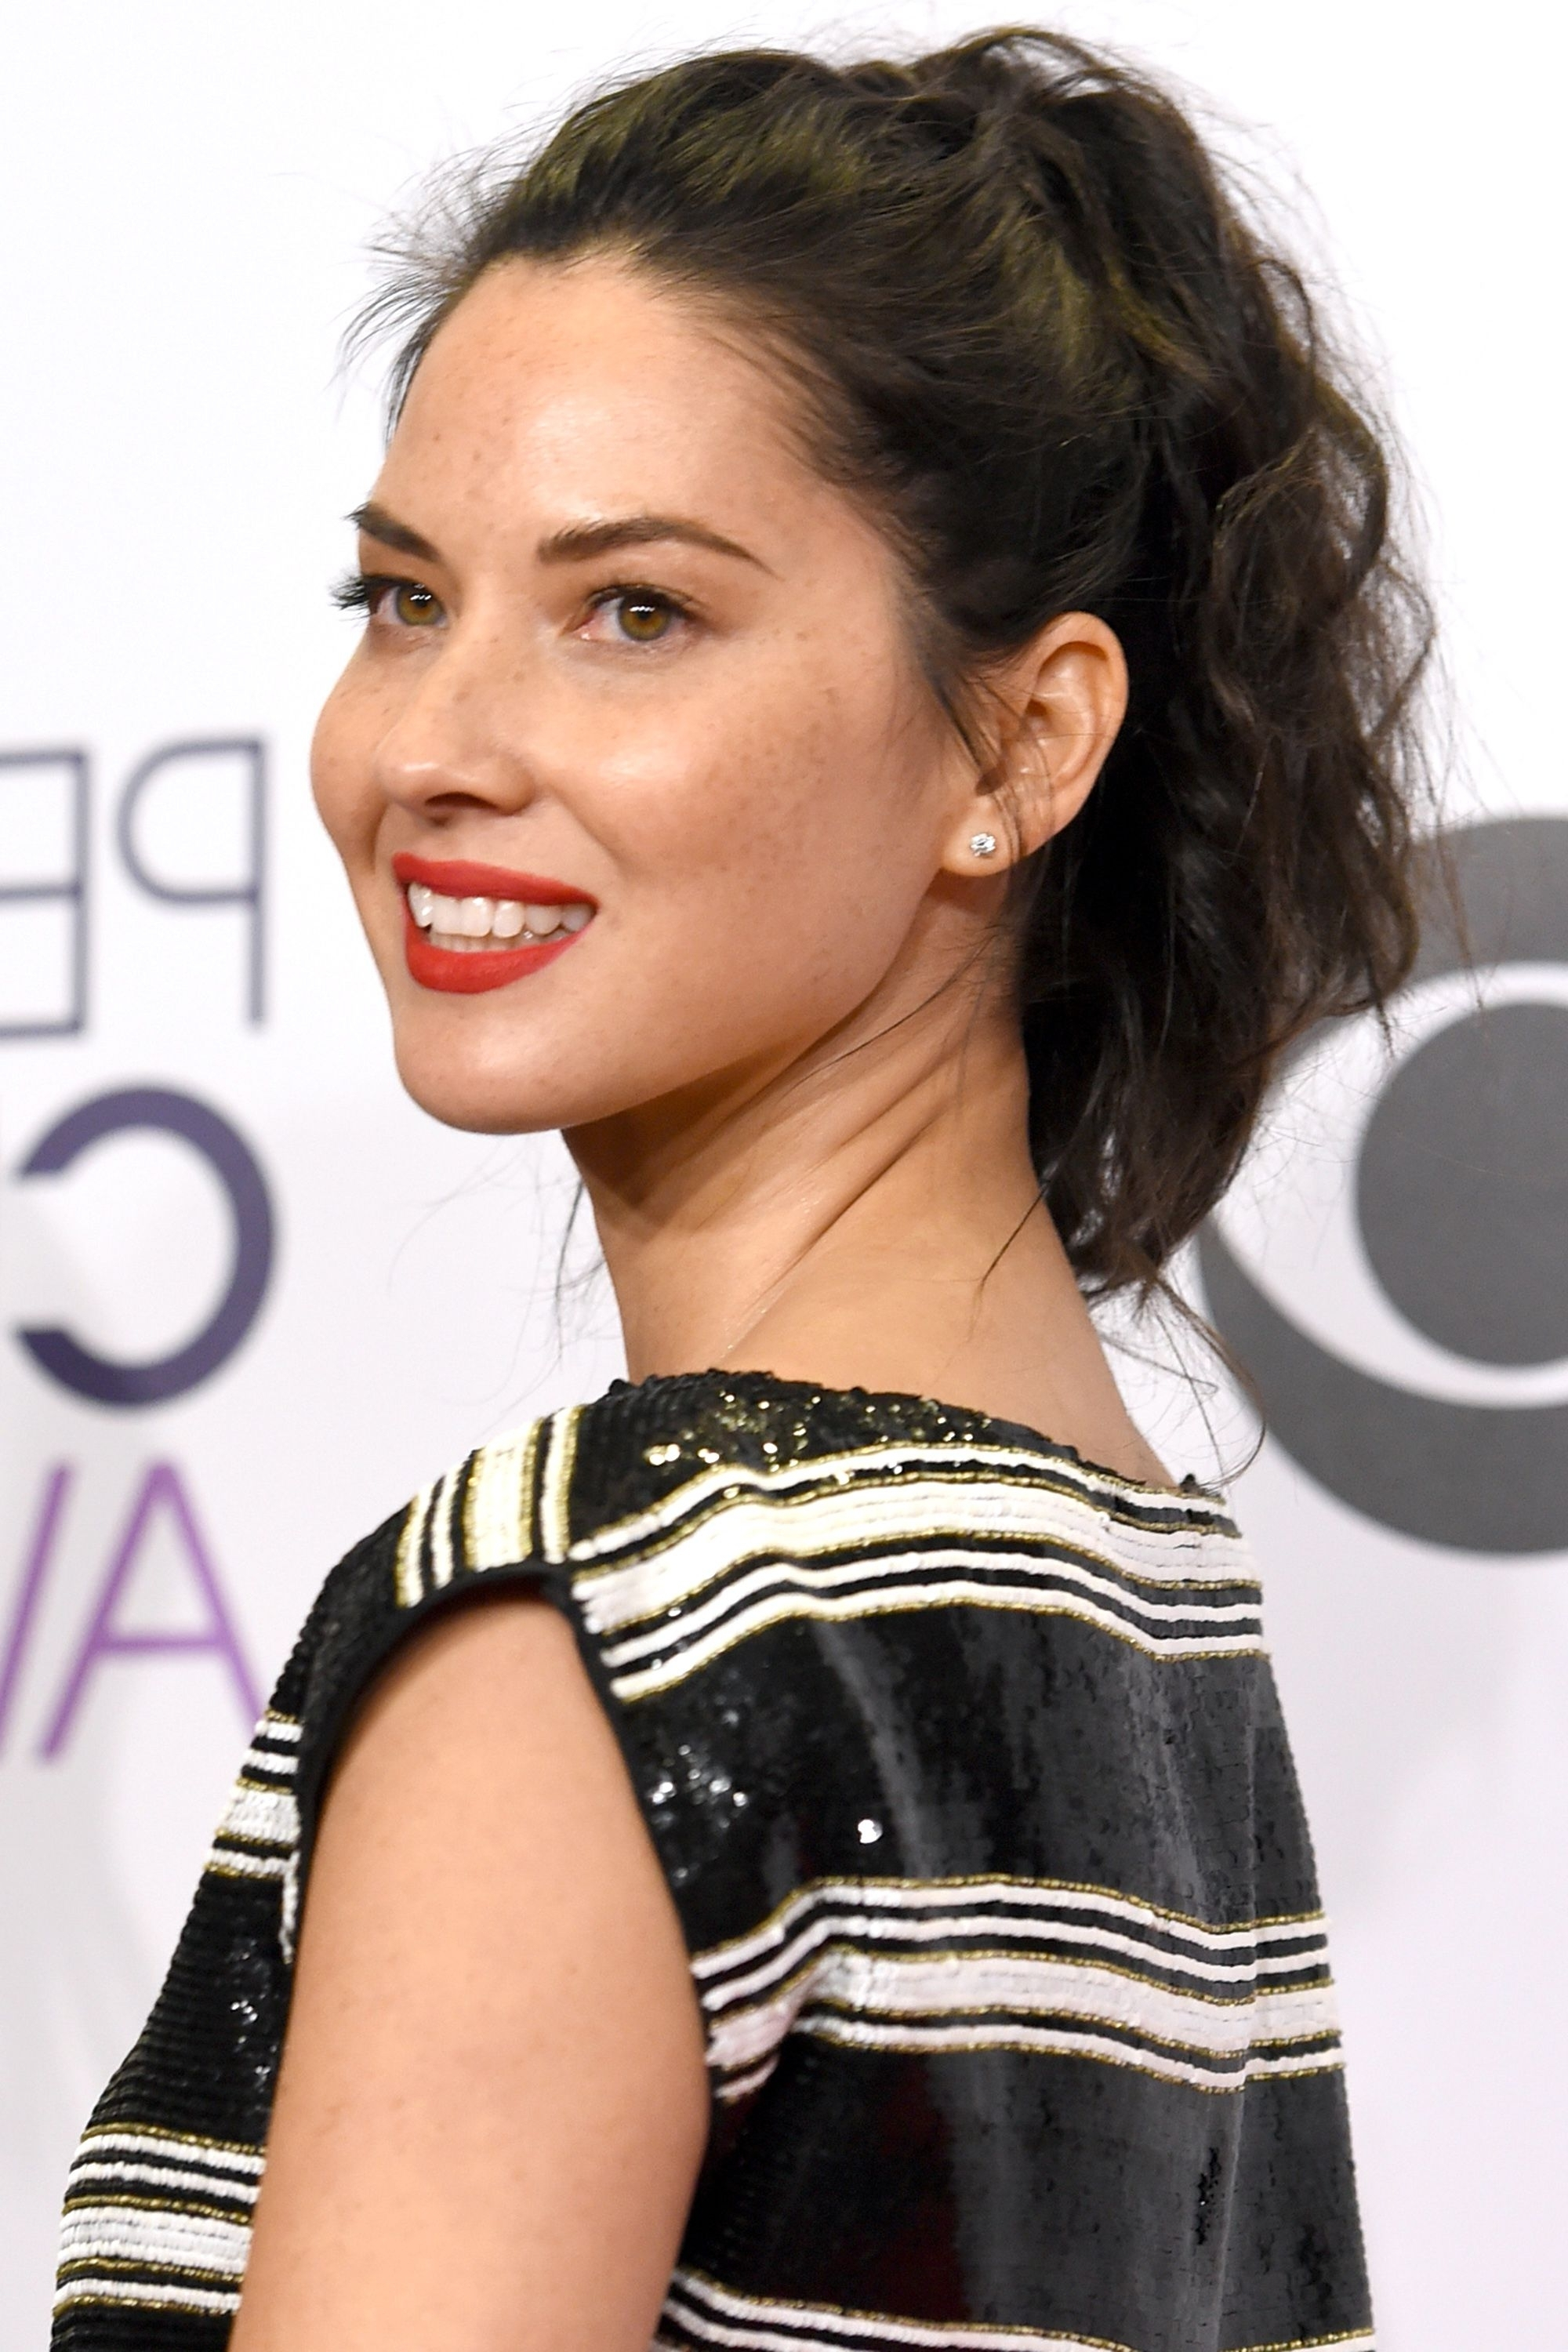 20 New Ways To Wear A Ponytail – Best Celebrity Ponytails Of 2017 Regarding Preferred Poofy Pony Hairstyles With Face Framing Strands (View 4 of 20)